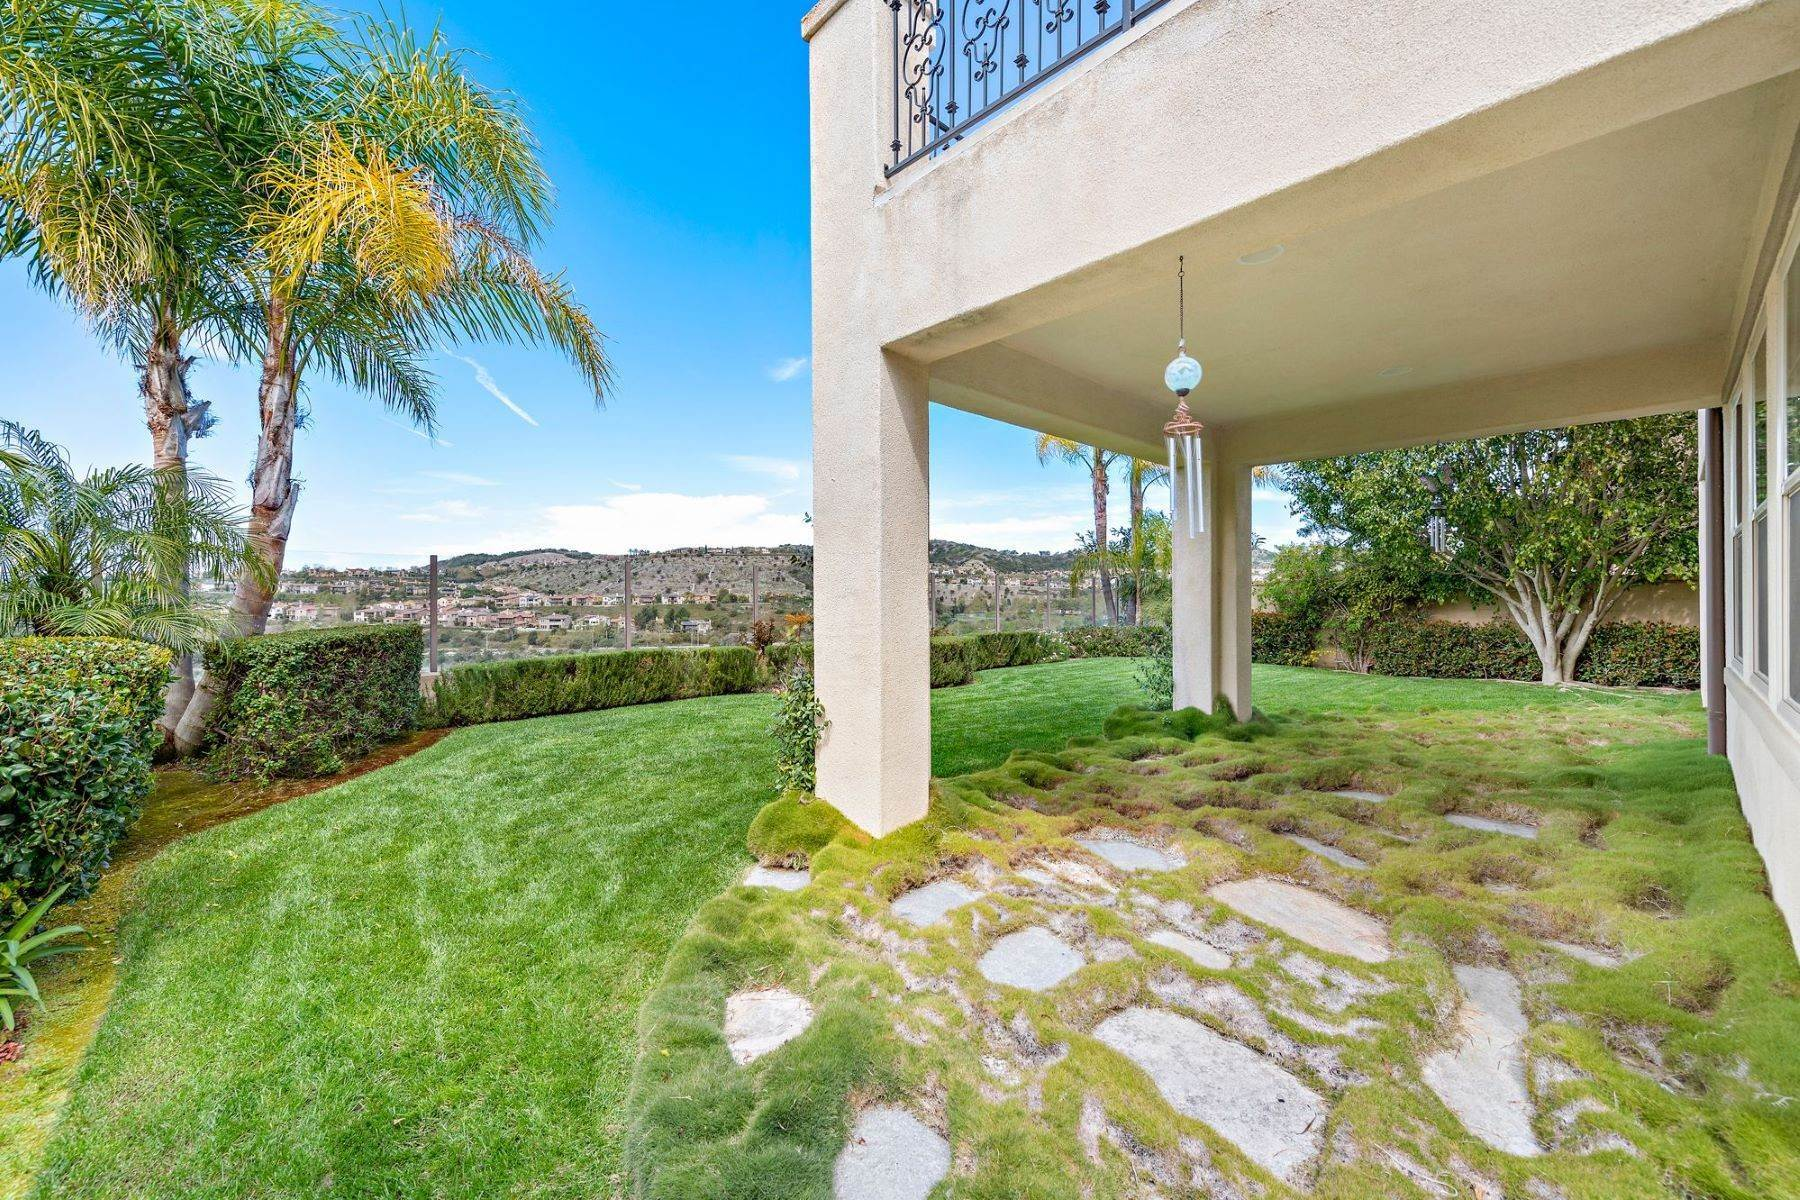 26. Single Family Homes for Sale at 53 Via Cartama, San Clemente, CA 92673 53 Via Cartama San Clemente, California 92673 United States